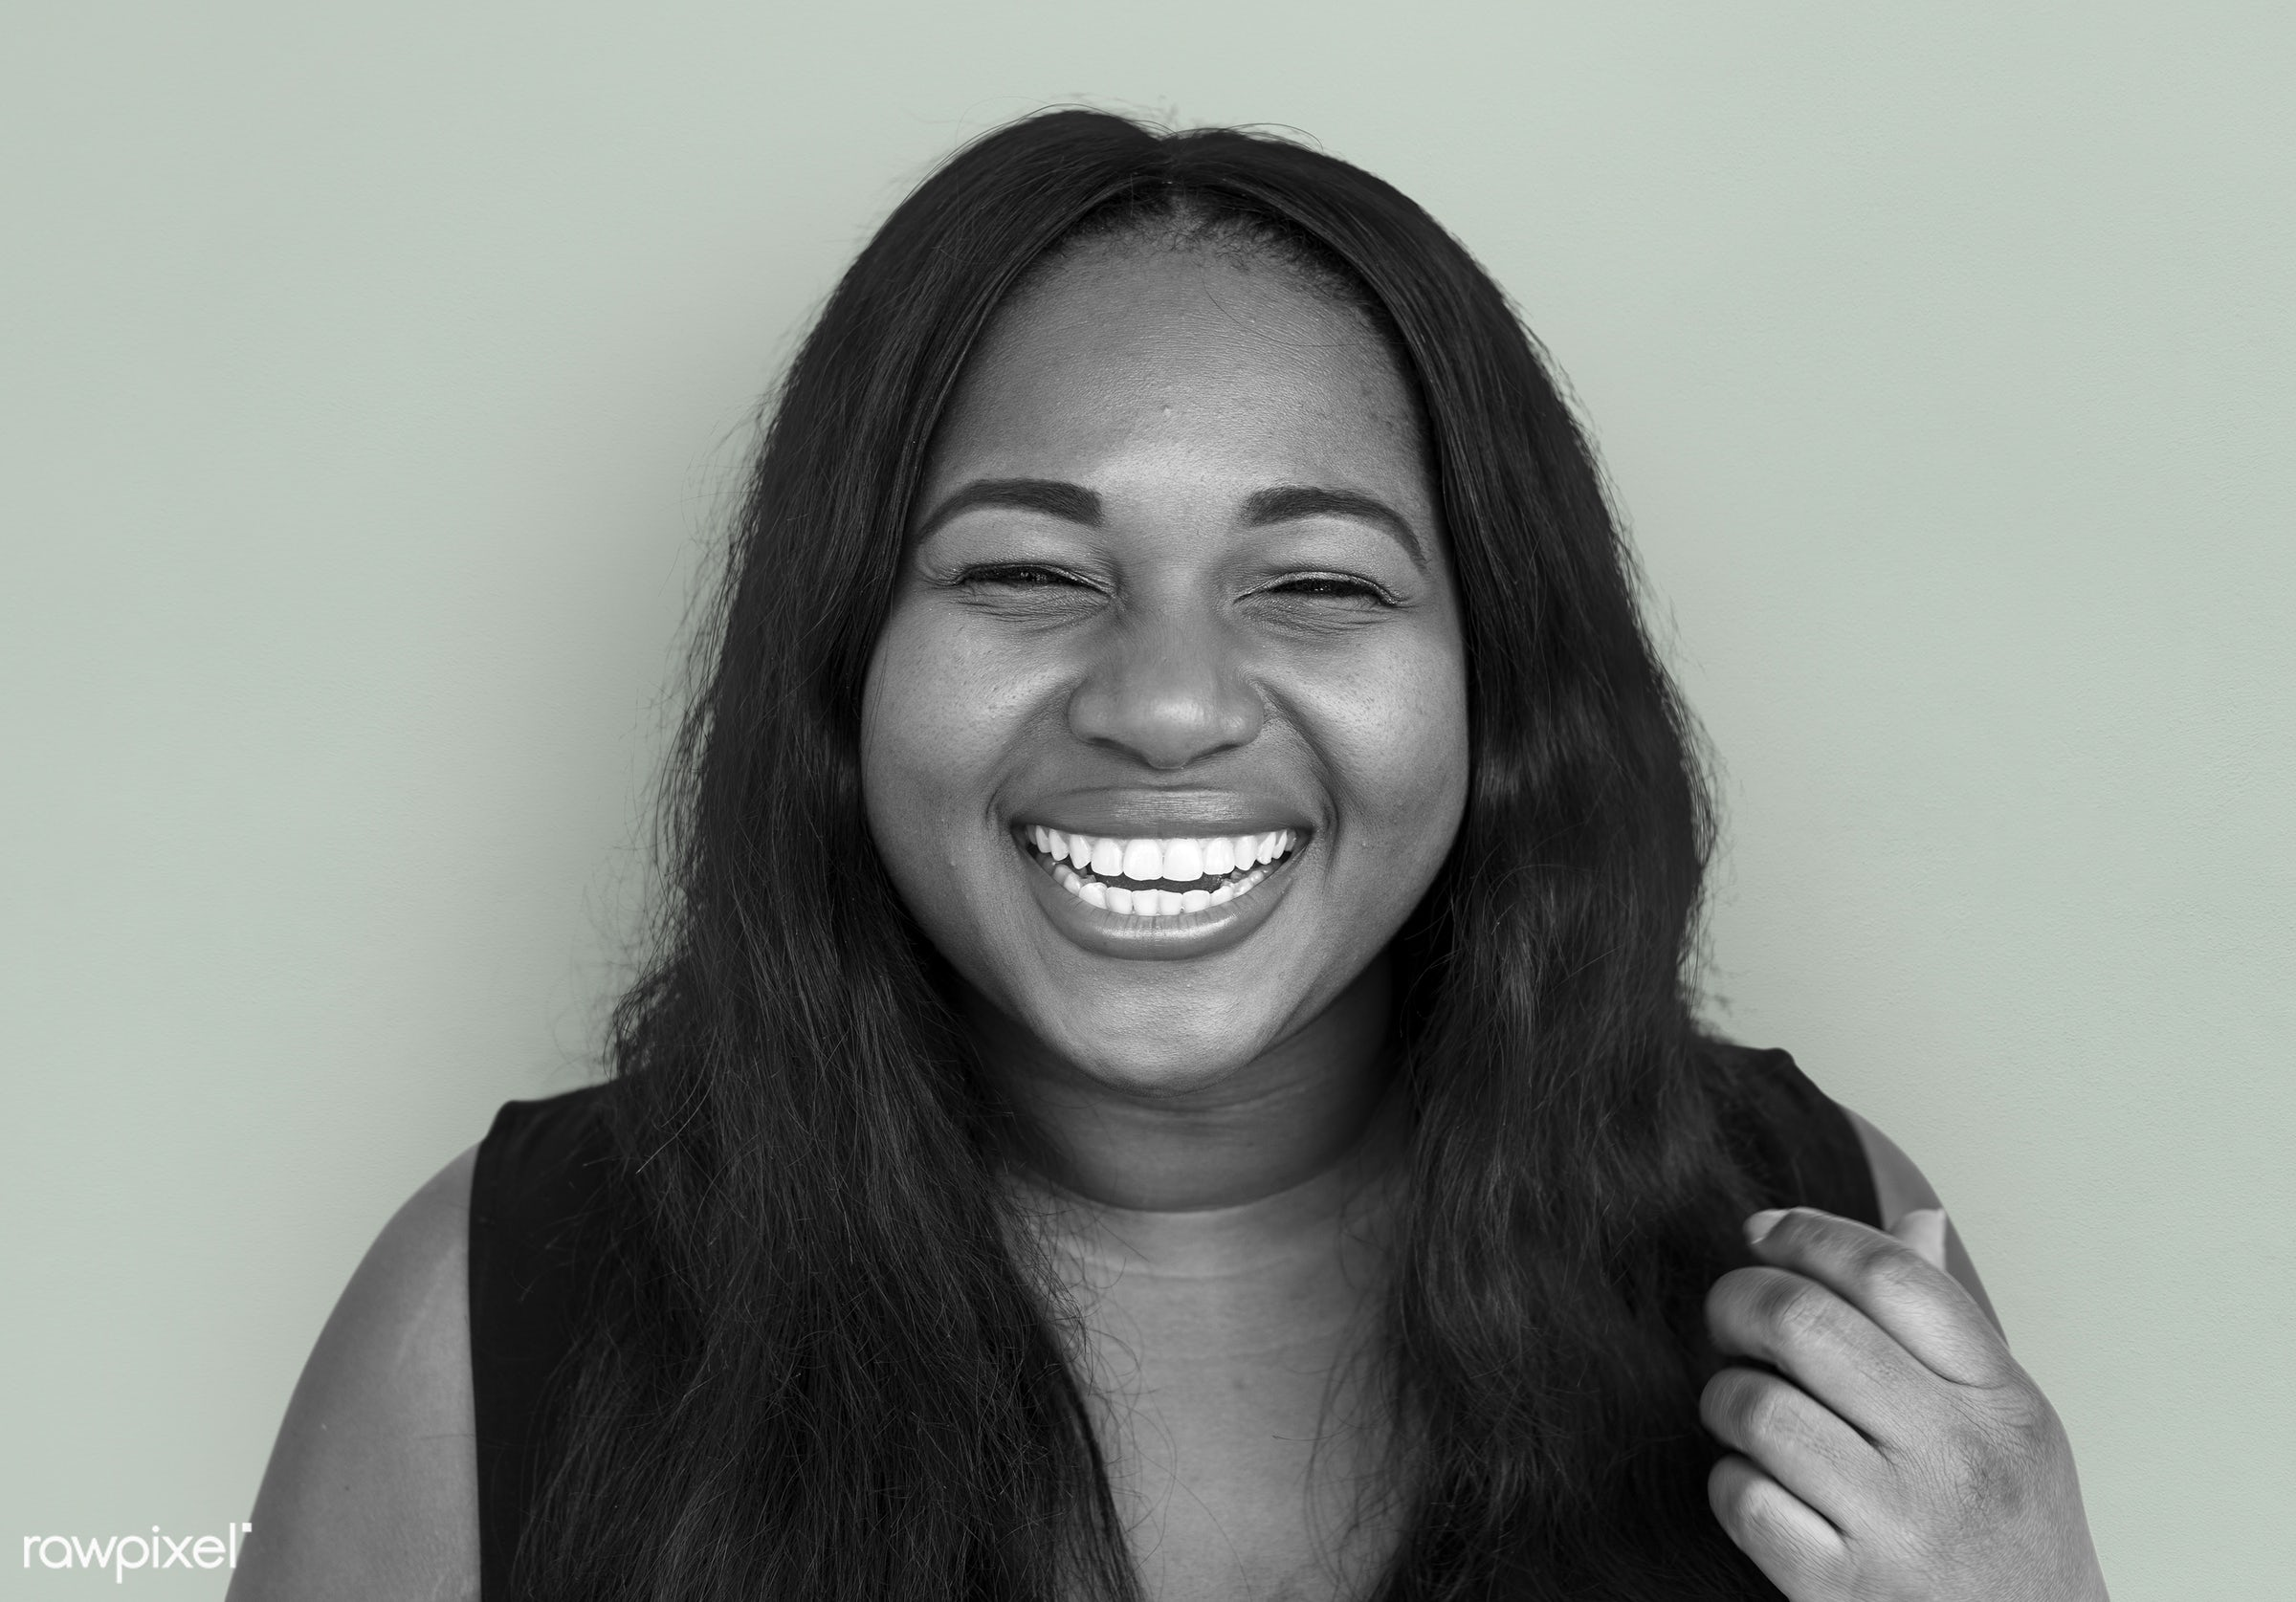 studio, expression, person, people, woman, smile, cheerful, smiling, african descent, happiness, portrait, emotion, charming...